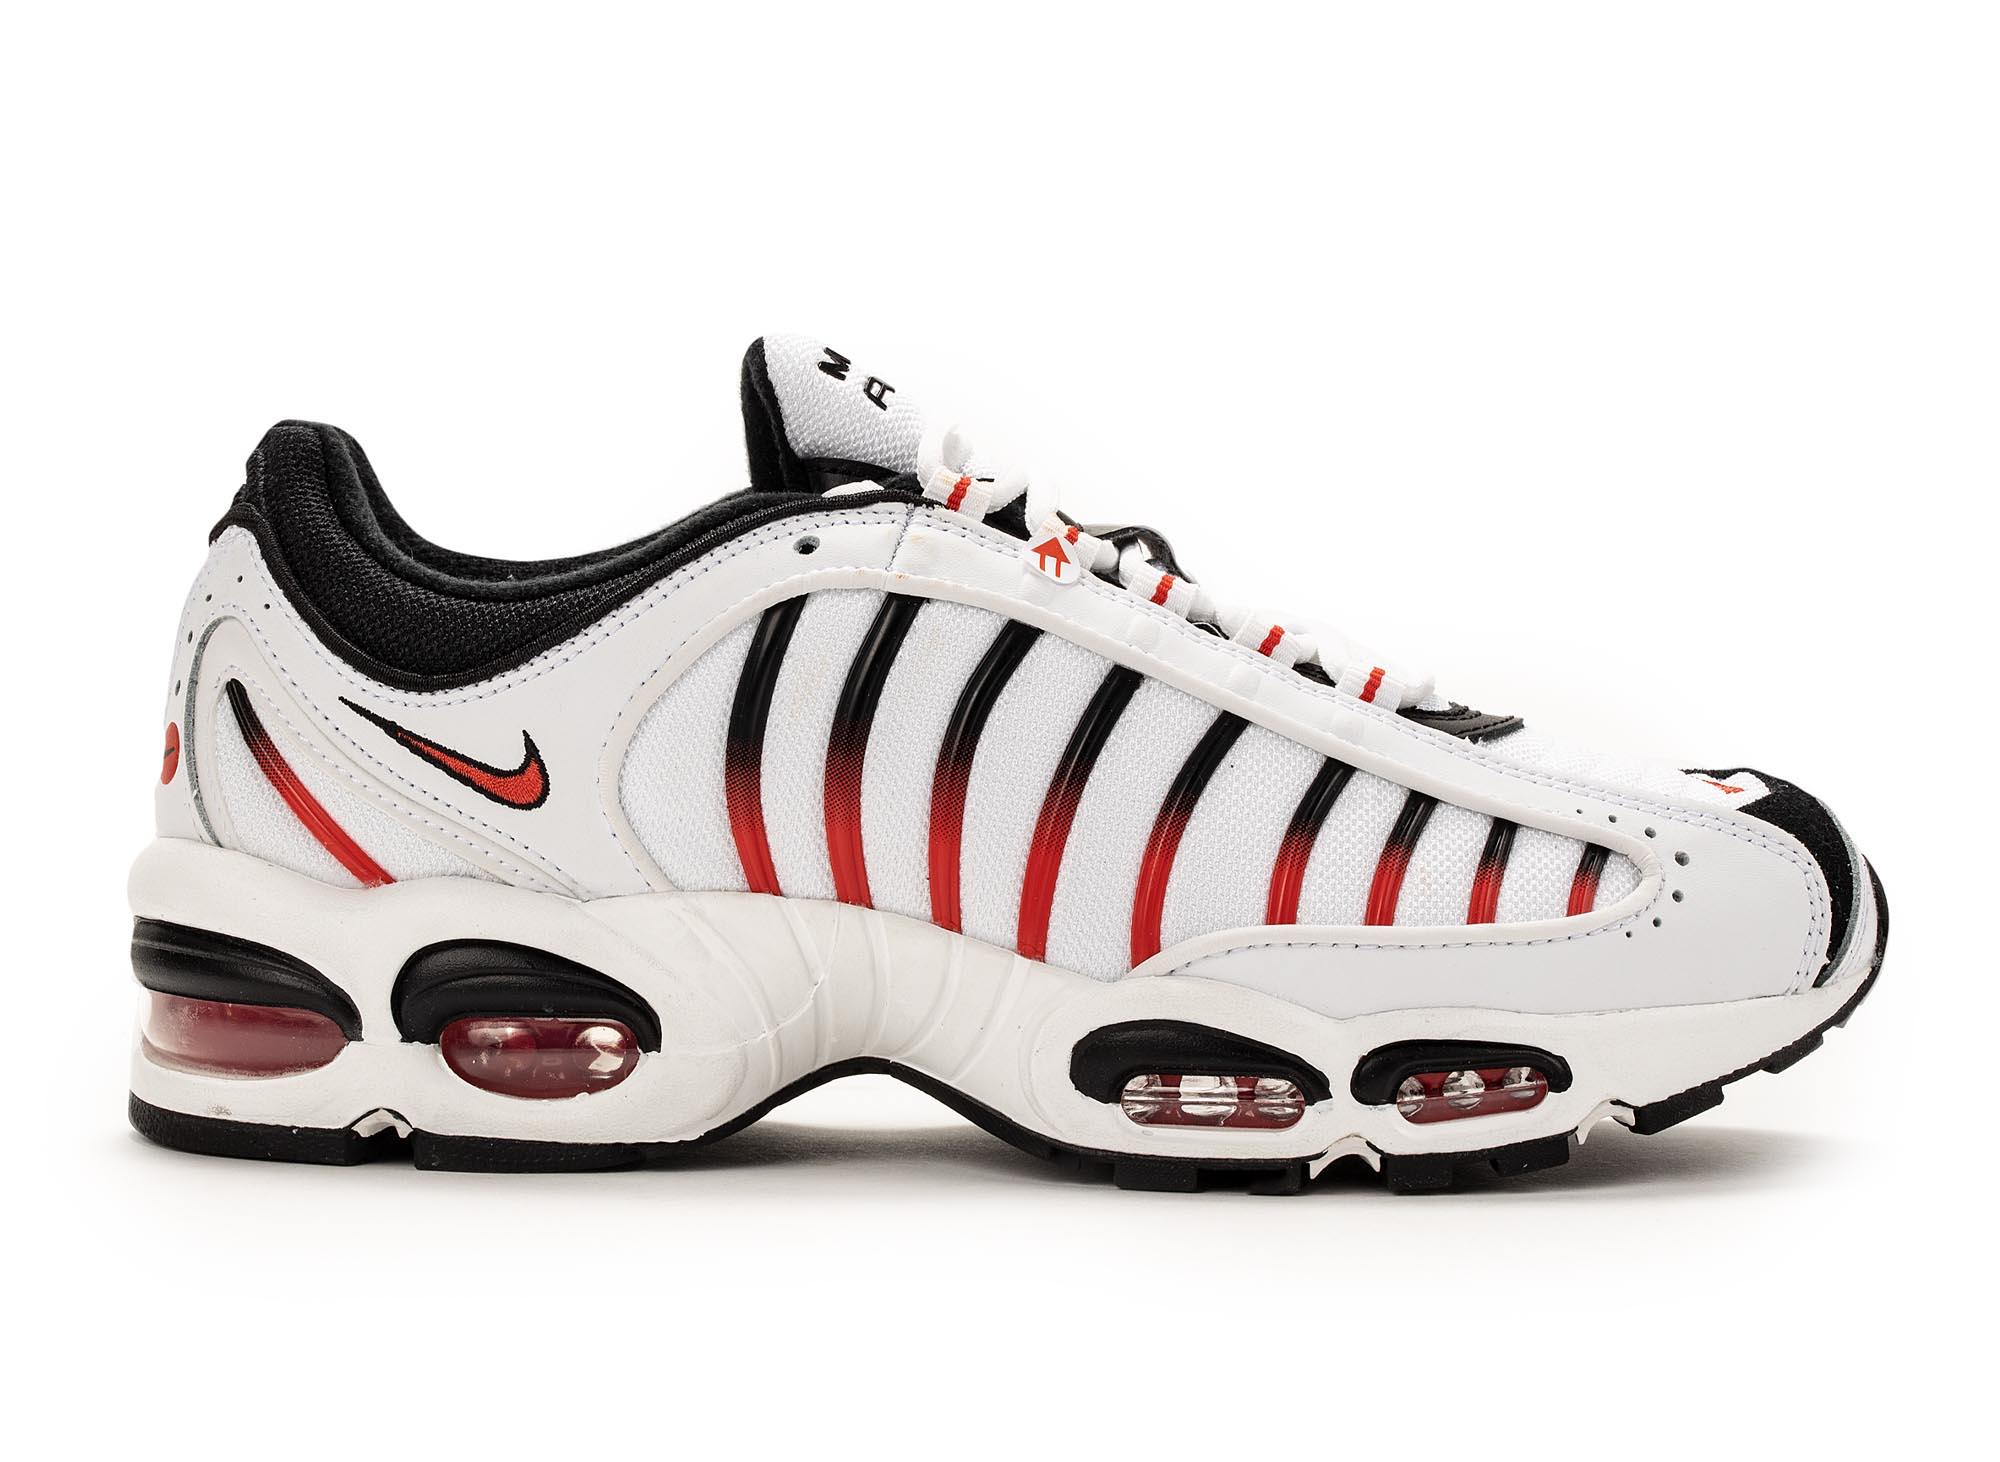 Nike Air Max Tailwind IV 'White/Habenero Red'